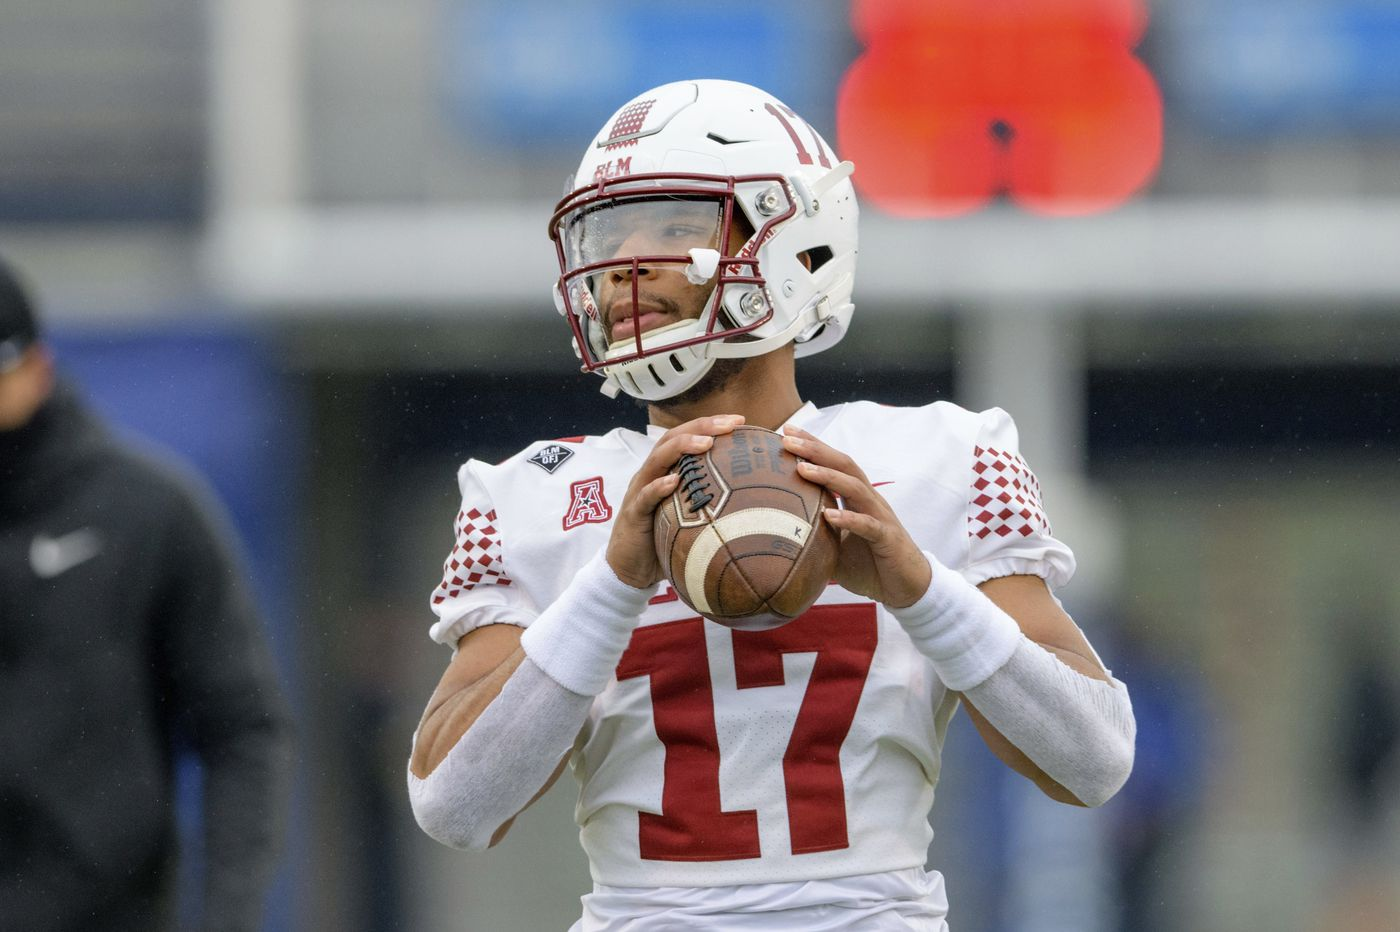 Early turnovers hurt Temple in 38-13 loss at UCF